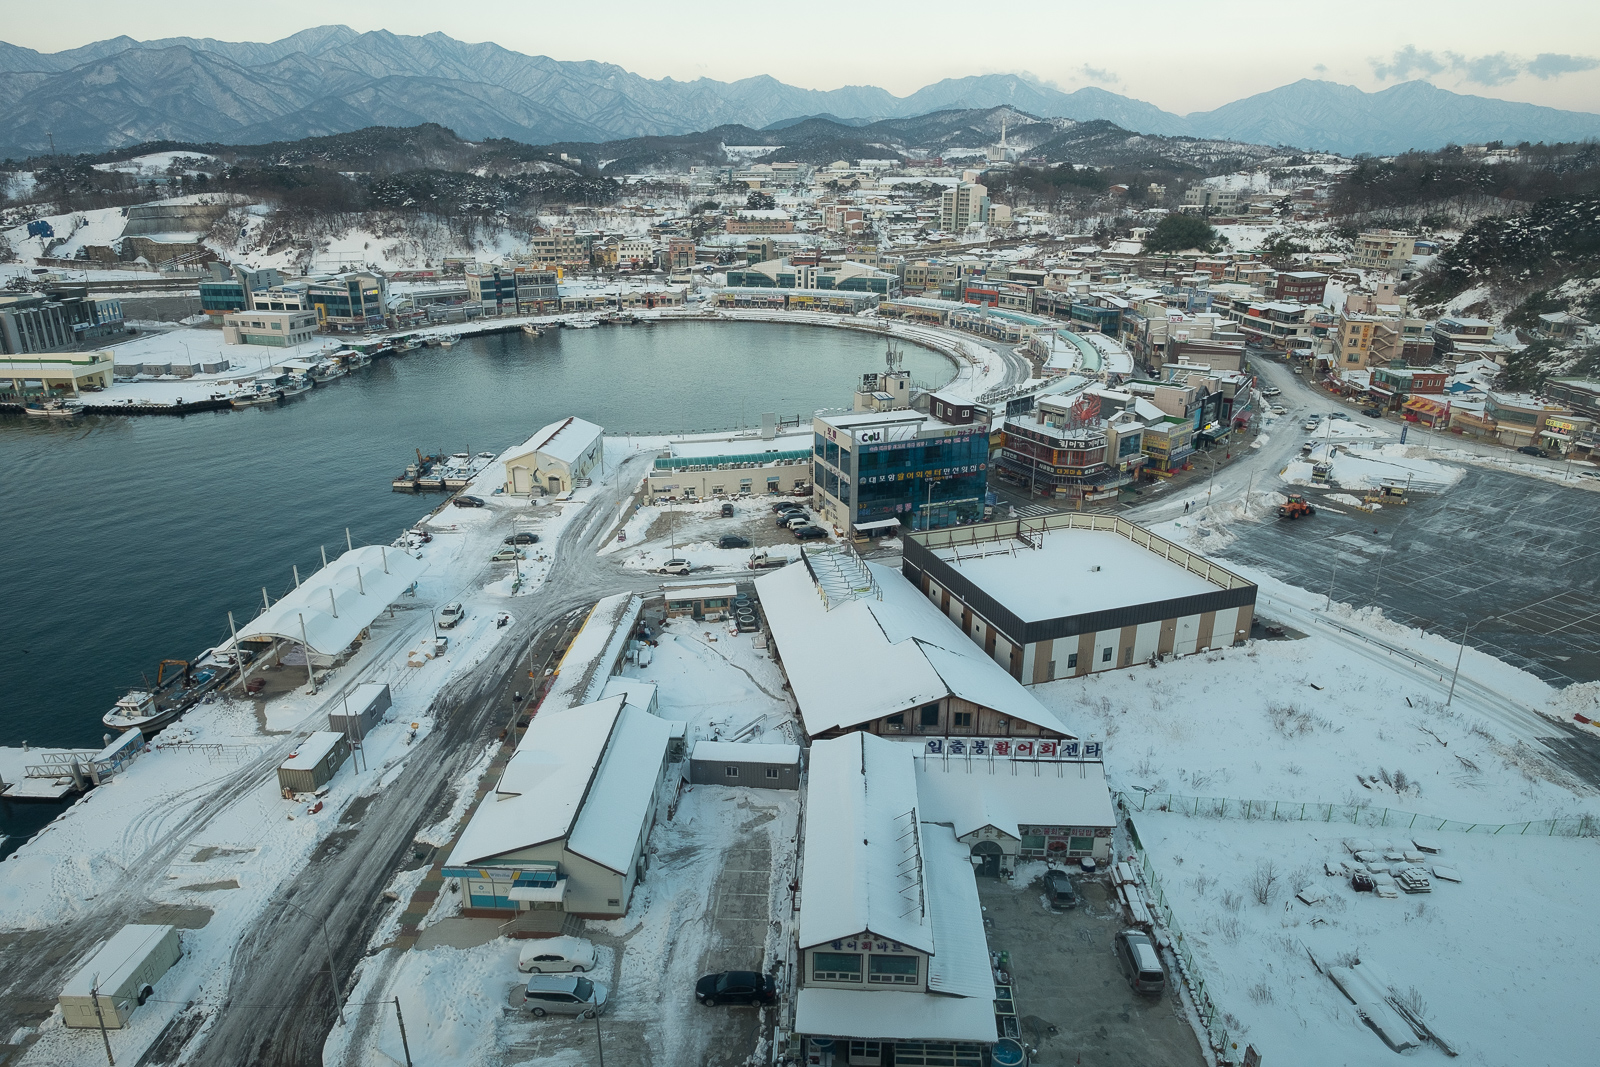 Sokcho harbour, South Korea